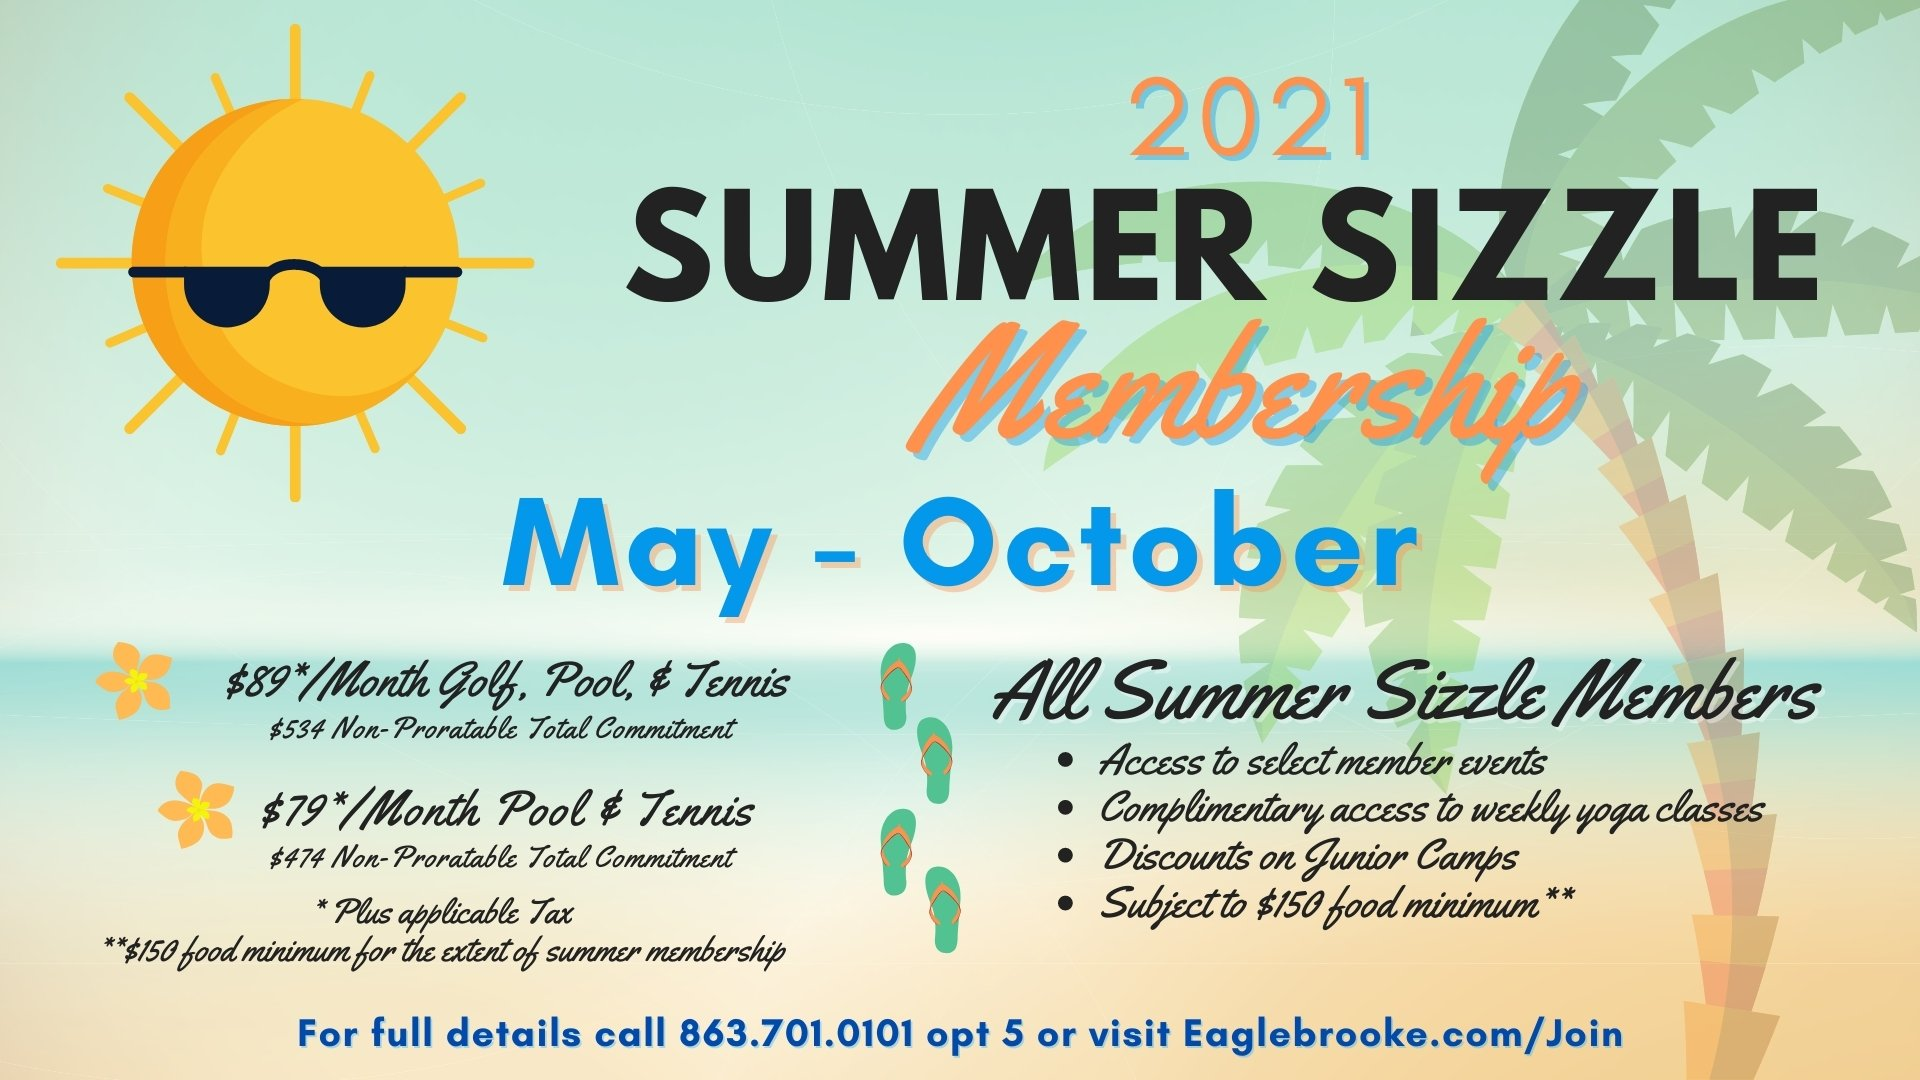 Summer Sizzle 2021